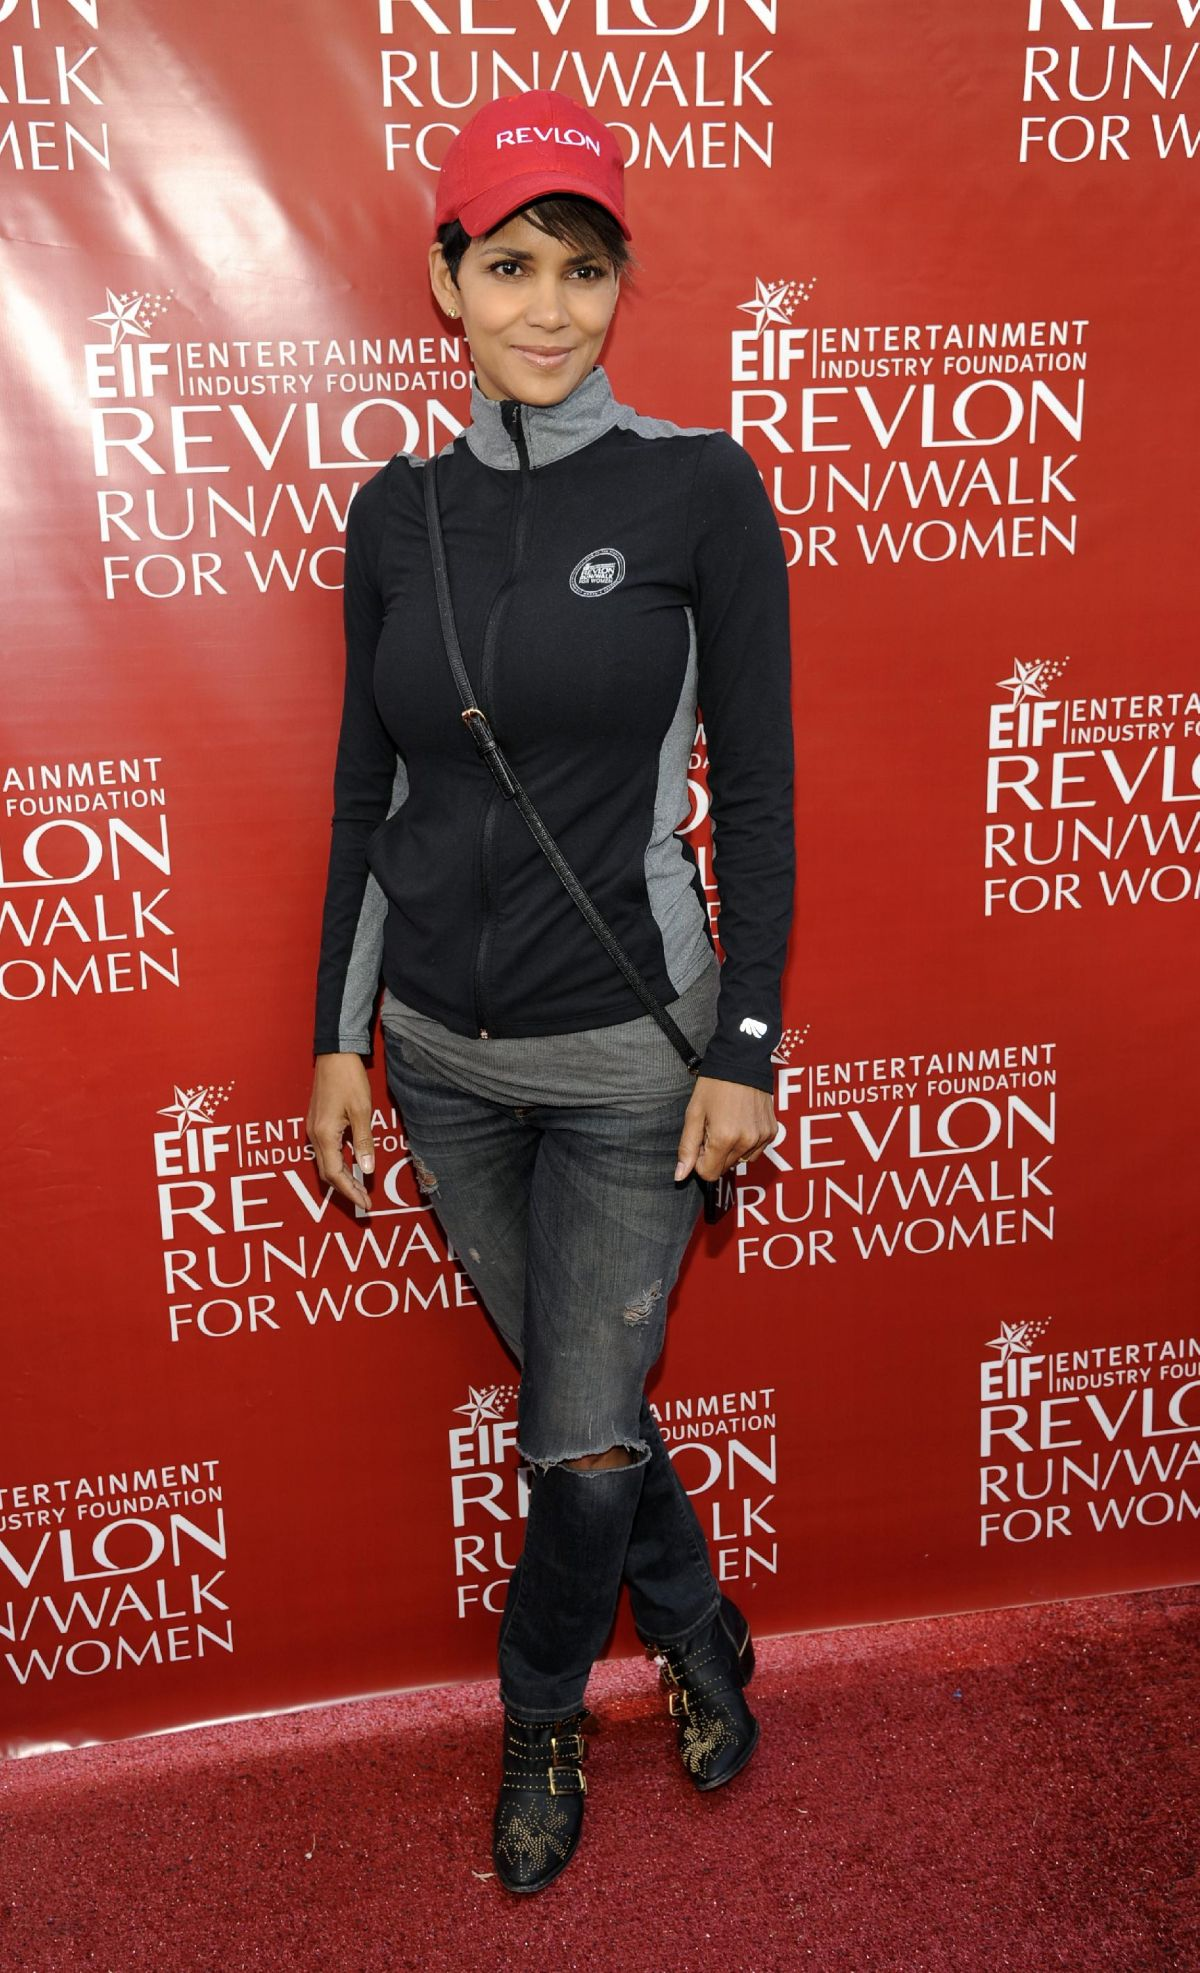 Halle Berry (Actress) - Pics, Videos, Dating, & News